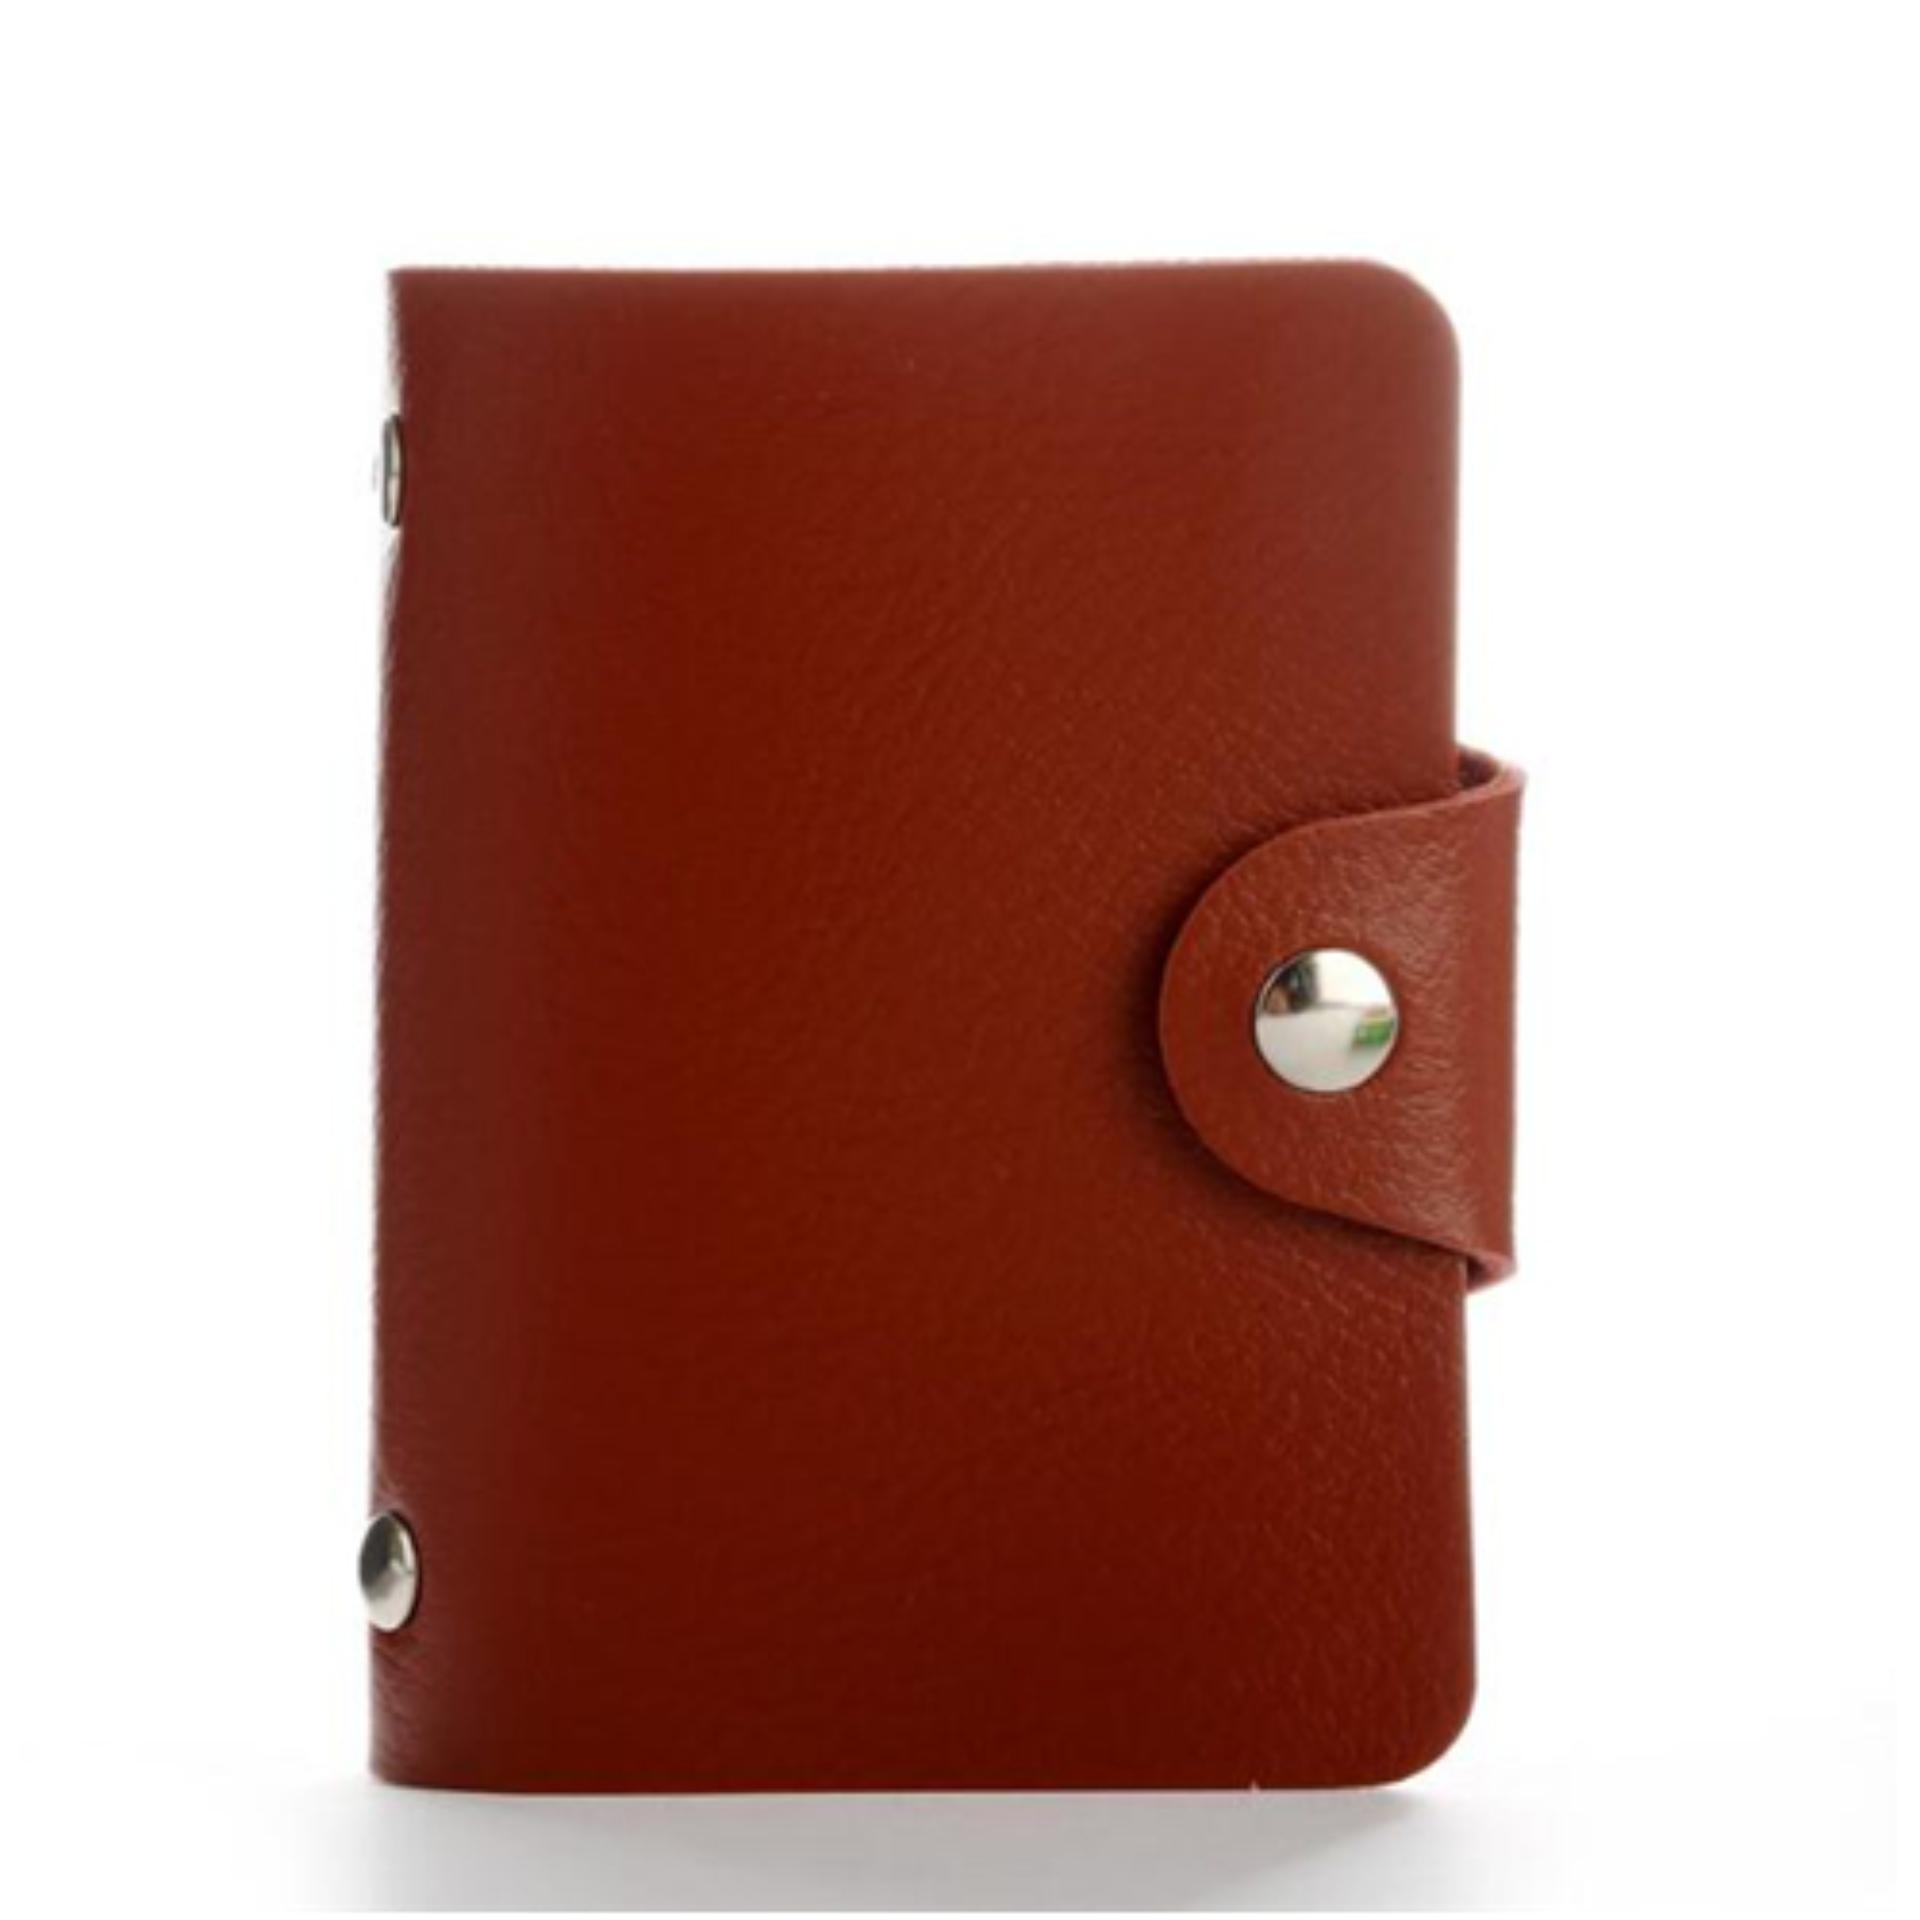 ZeeBee Dompet Kartu 24 Slot - PU Leather Card Holder - Tempat Kartu Nama / Kartu Kredit ATM